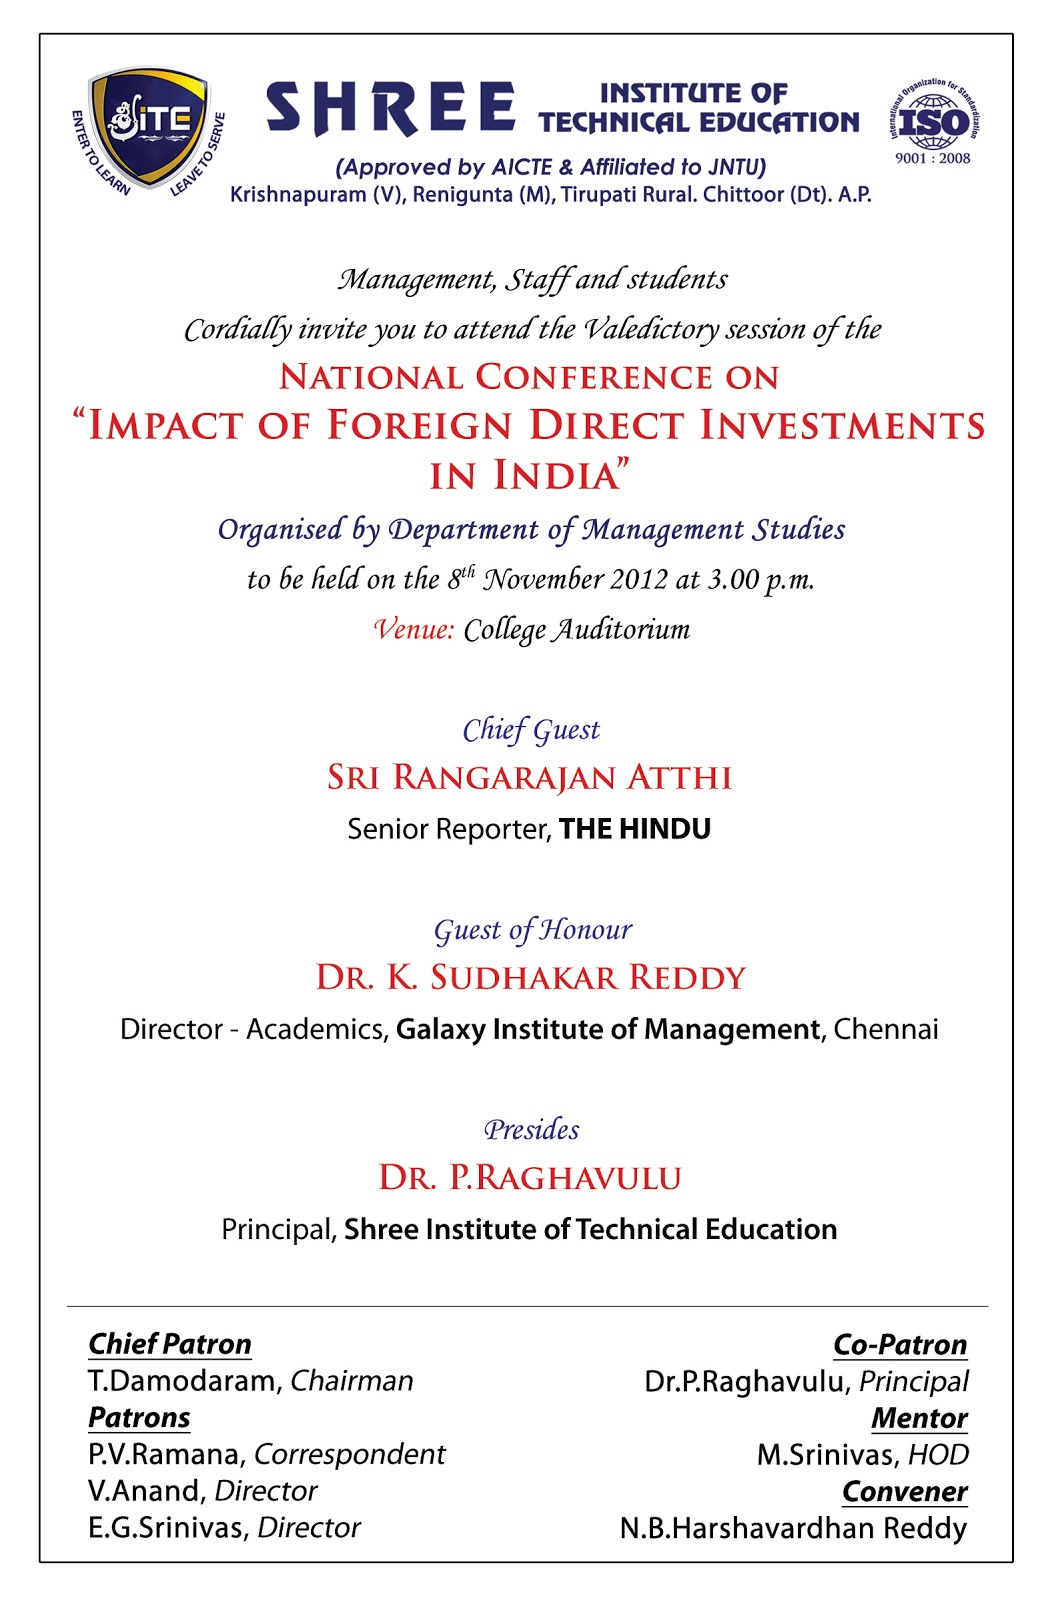 fdi in higher education a boon or bane Pdf | the role of foreign direct investment in higher education in the developing   this paper studies the impact of fdi inflows on higher education in developing  countries for  boon or bane role of fdi in the economic growth of pakistan.